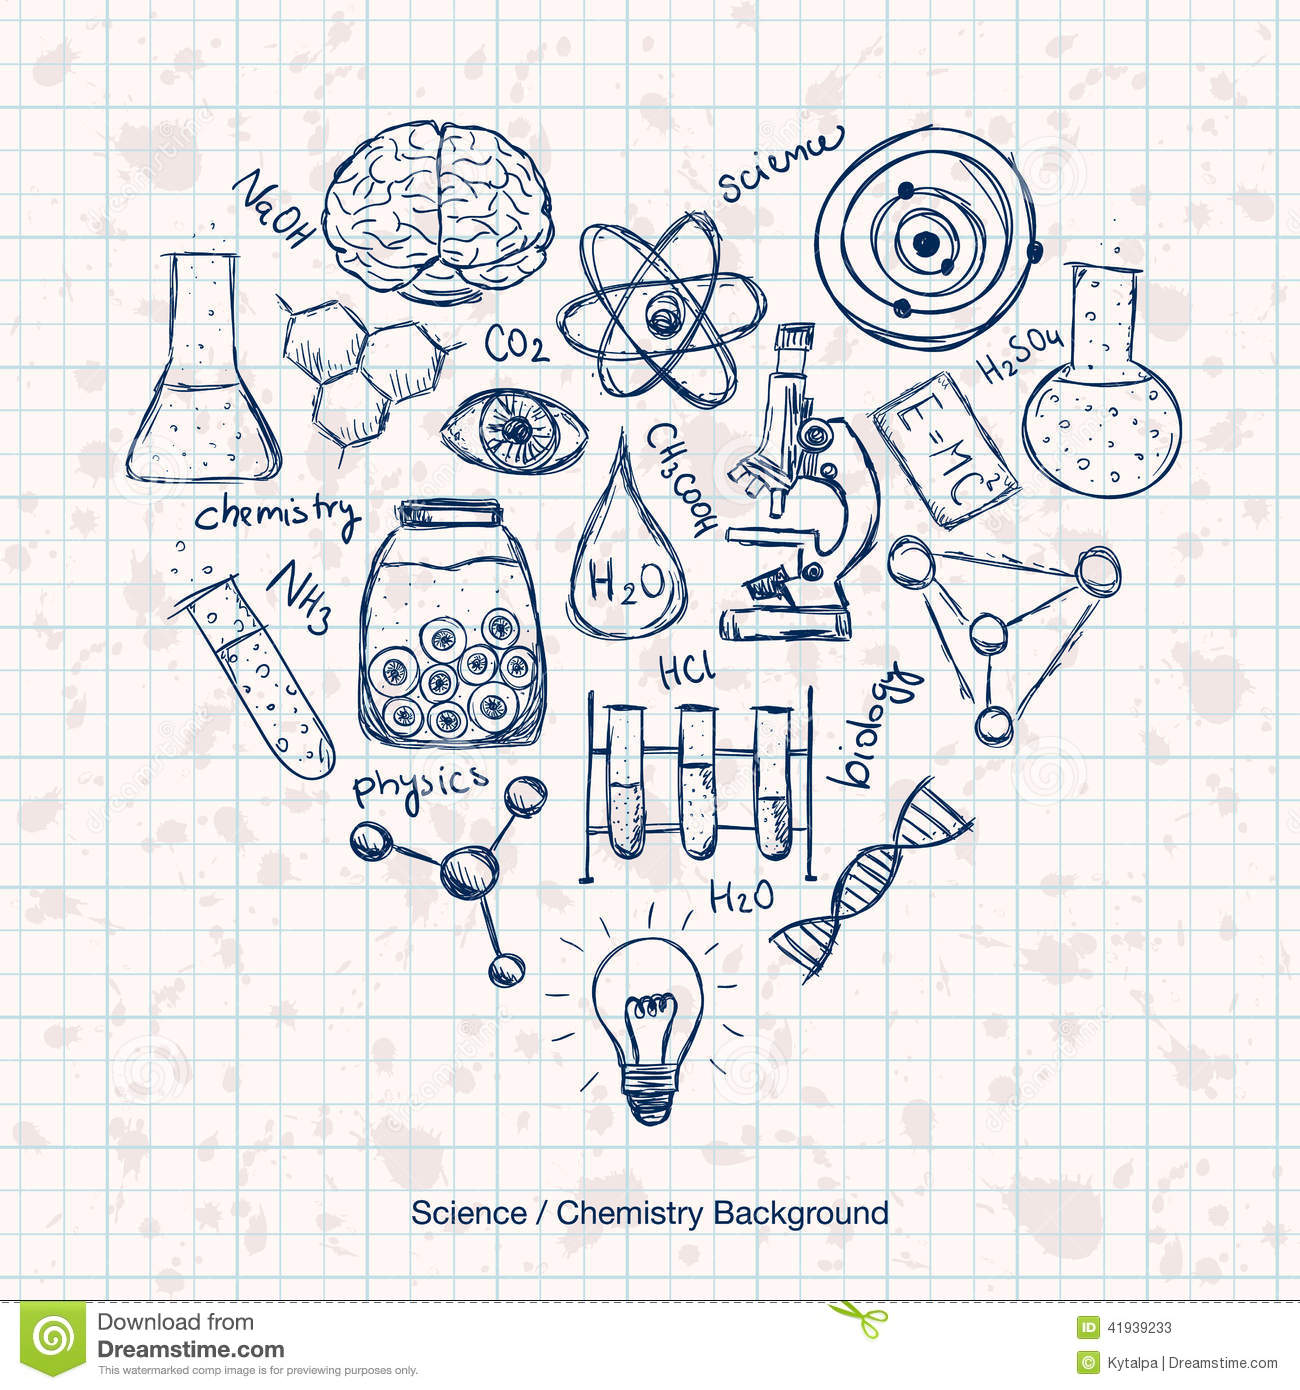 science chemistry background stuff scientific heart drawn hand illustration drawing biology vector shape preview